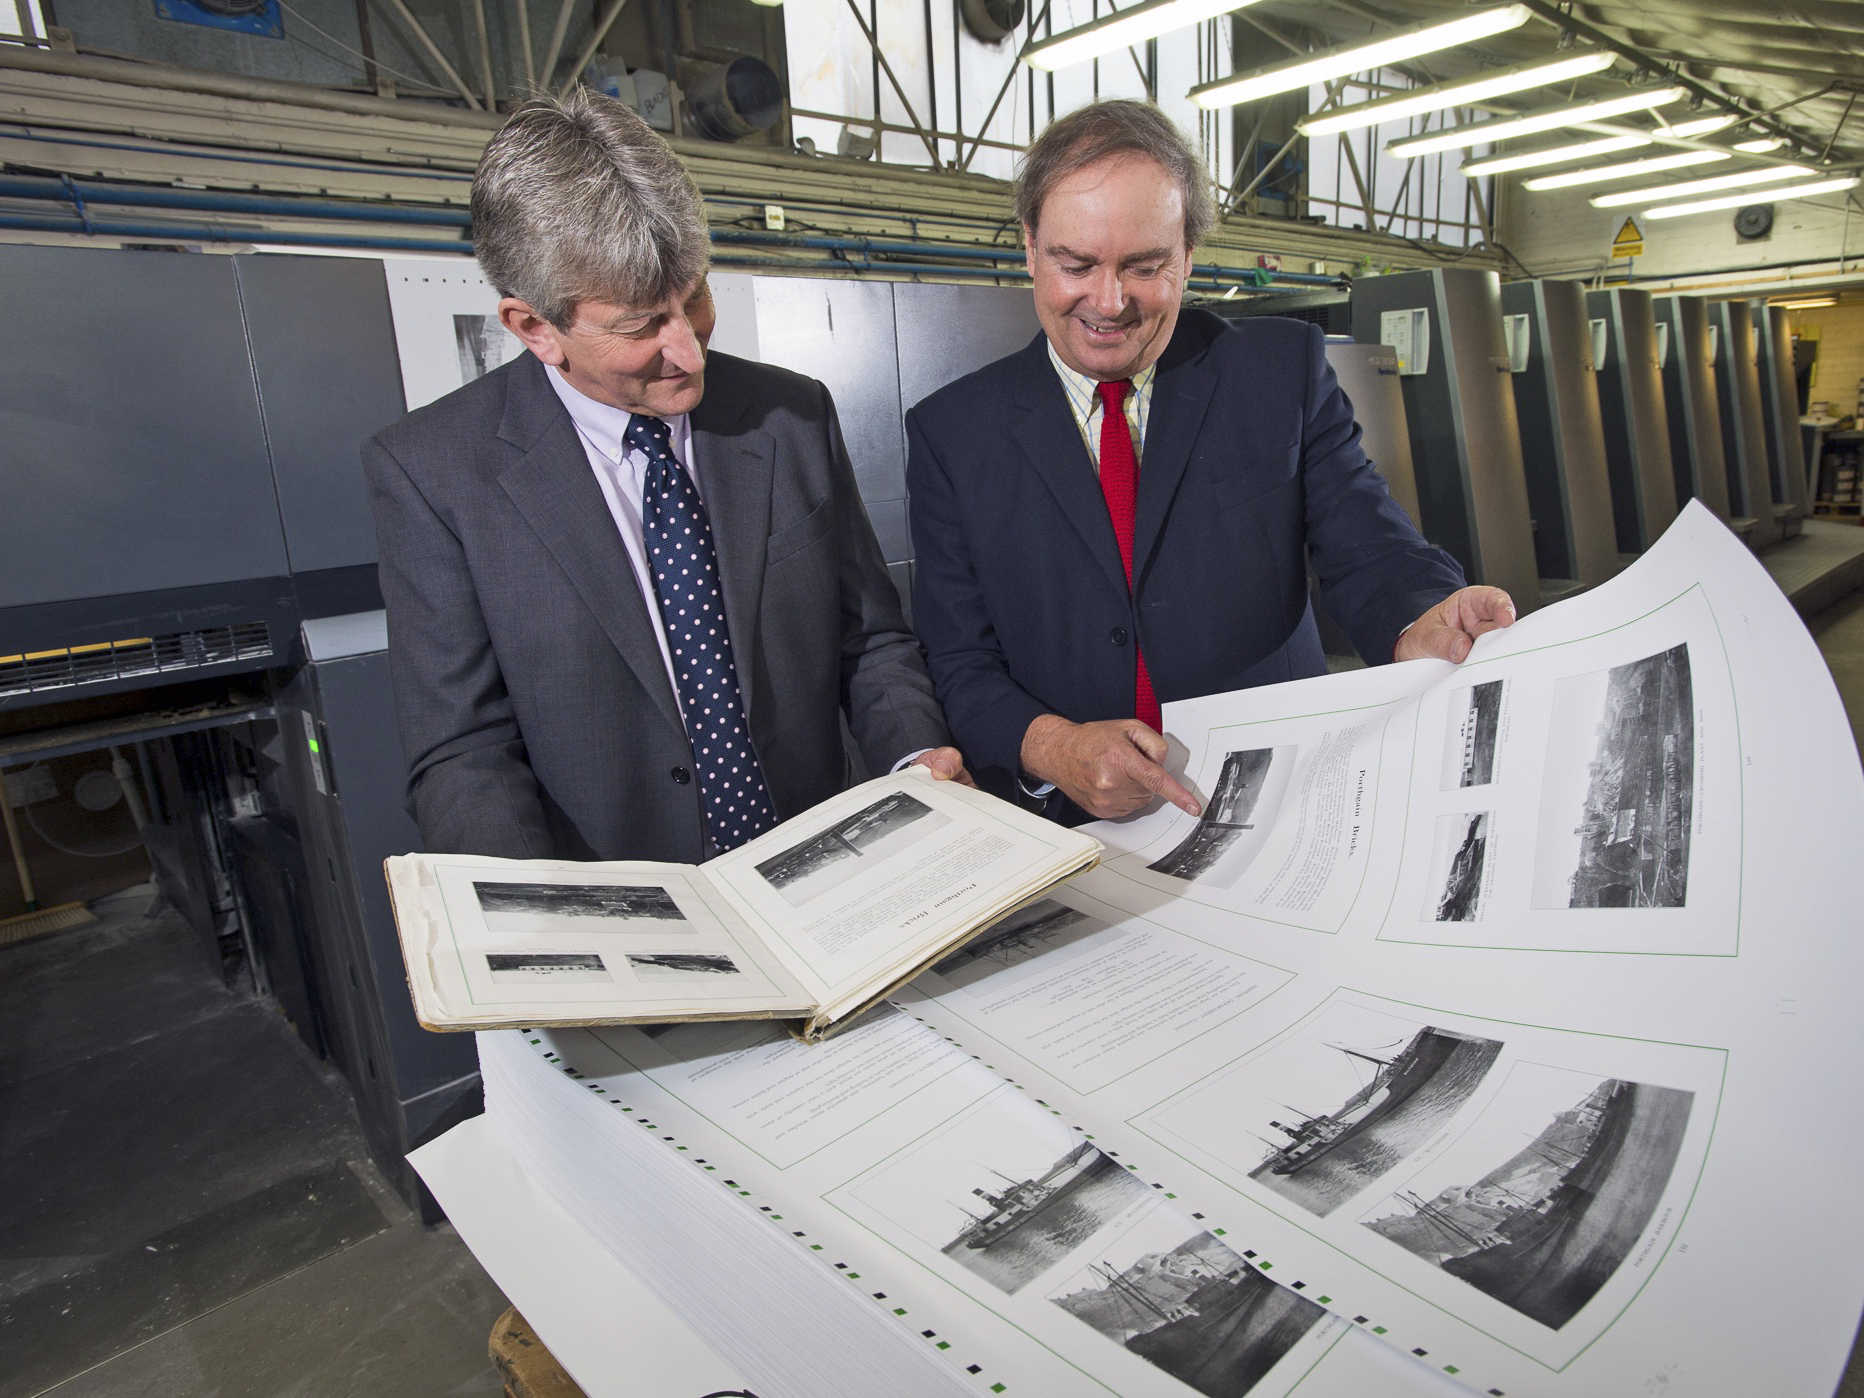 Nick Horton and Marcus Scott Russell at the printers